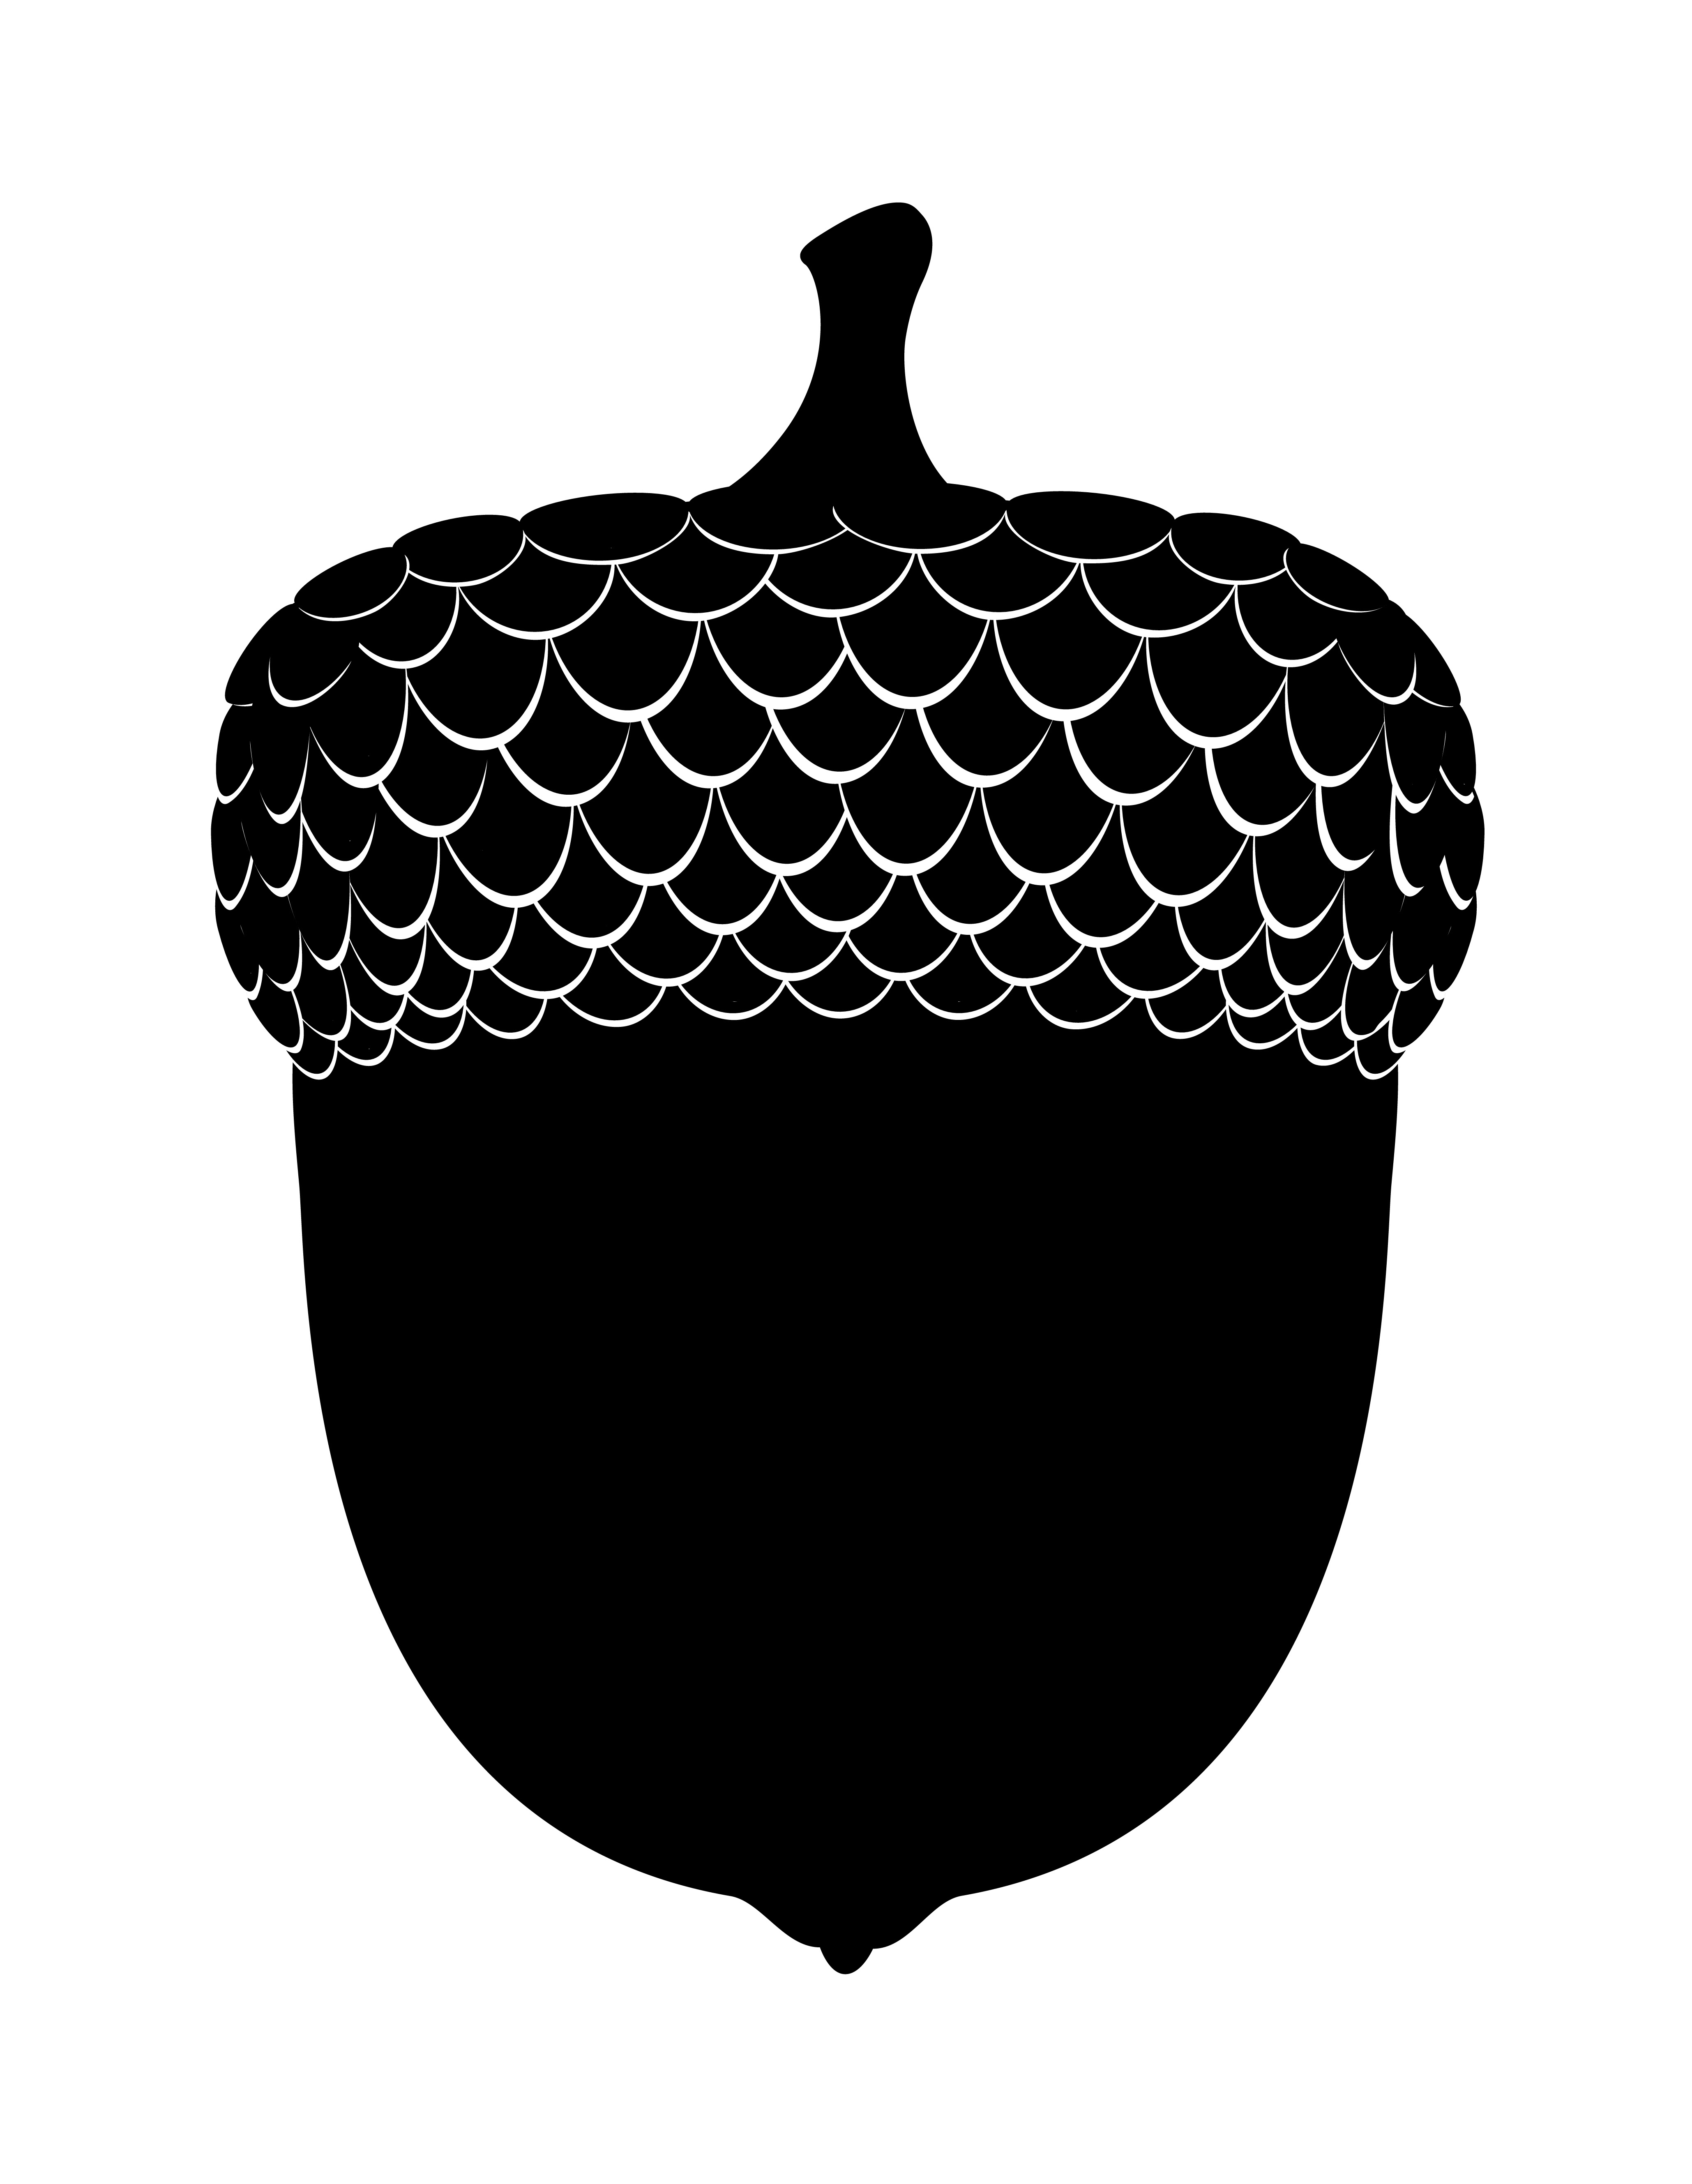 oak acorns black outline silhouette vector illustration ...